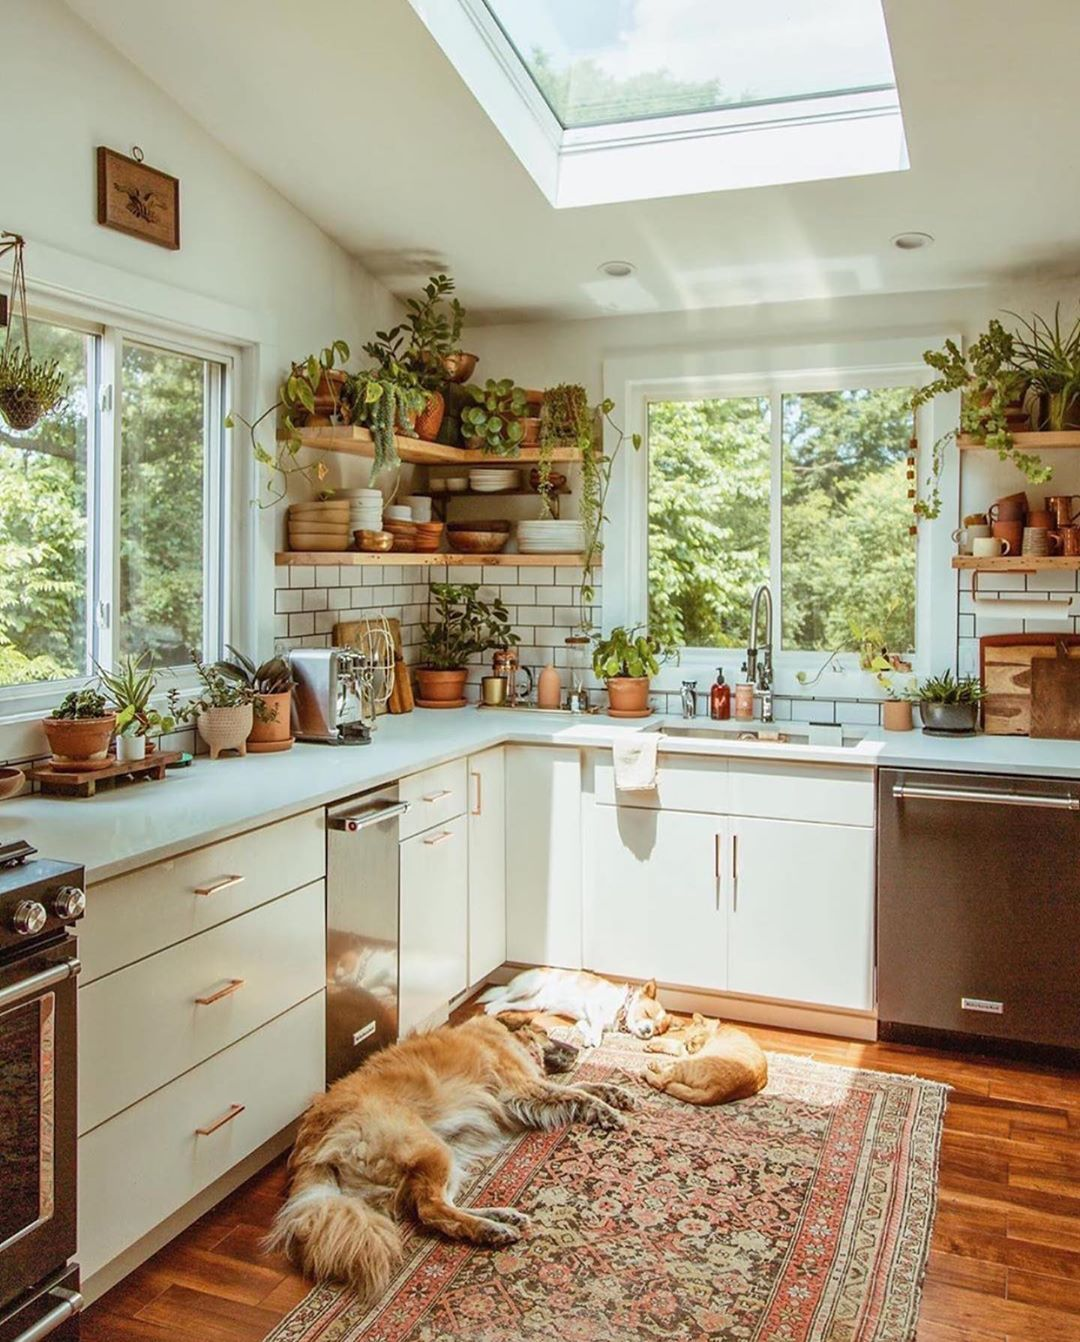 Cozy Home Shots On Instagram Hello Everyone How Nice Is This Cozy Kitchen Friendship Via Hippie Tribe And Earthy Kitchen Kitchen Inspirations Sweet Home